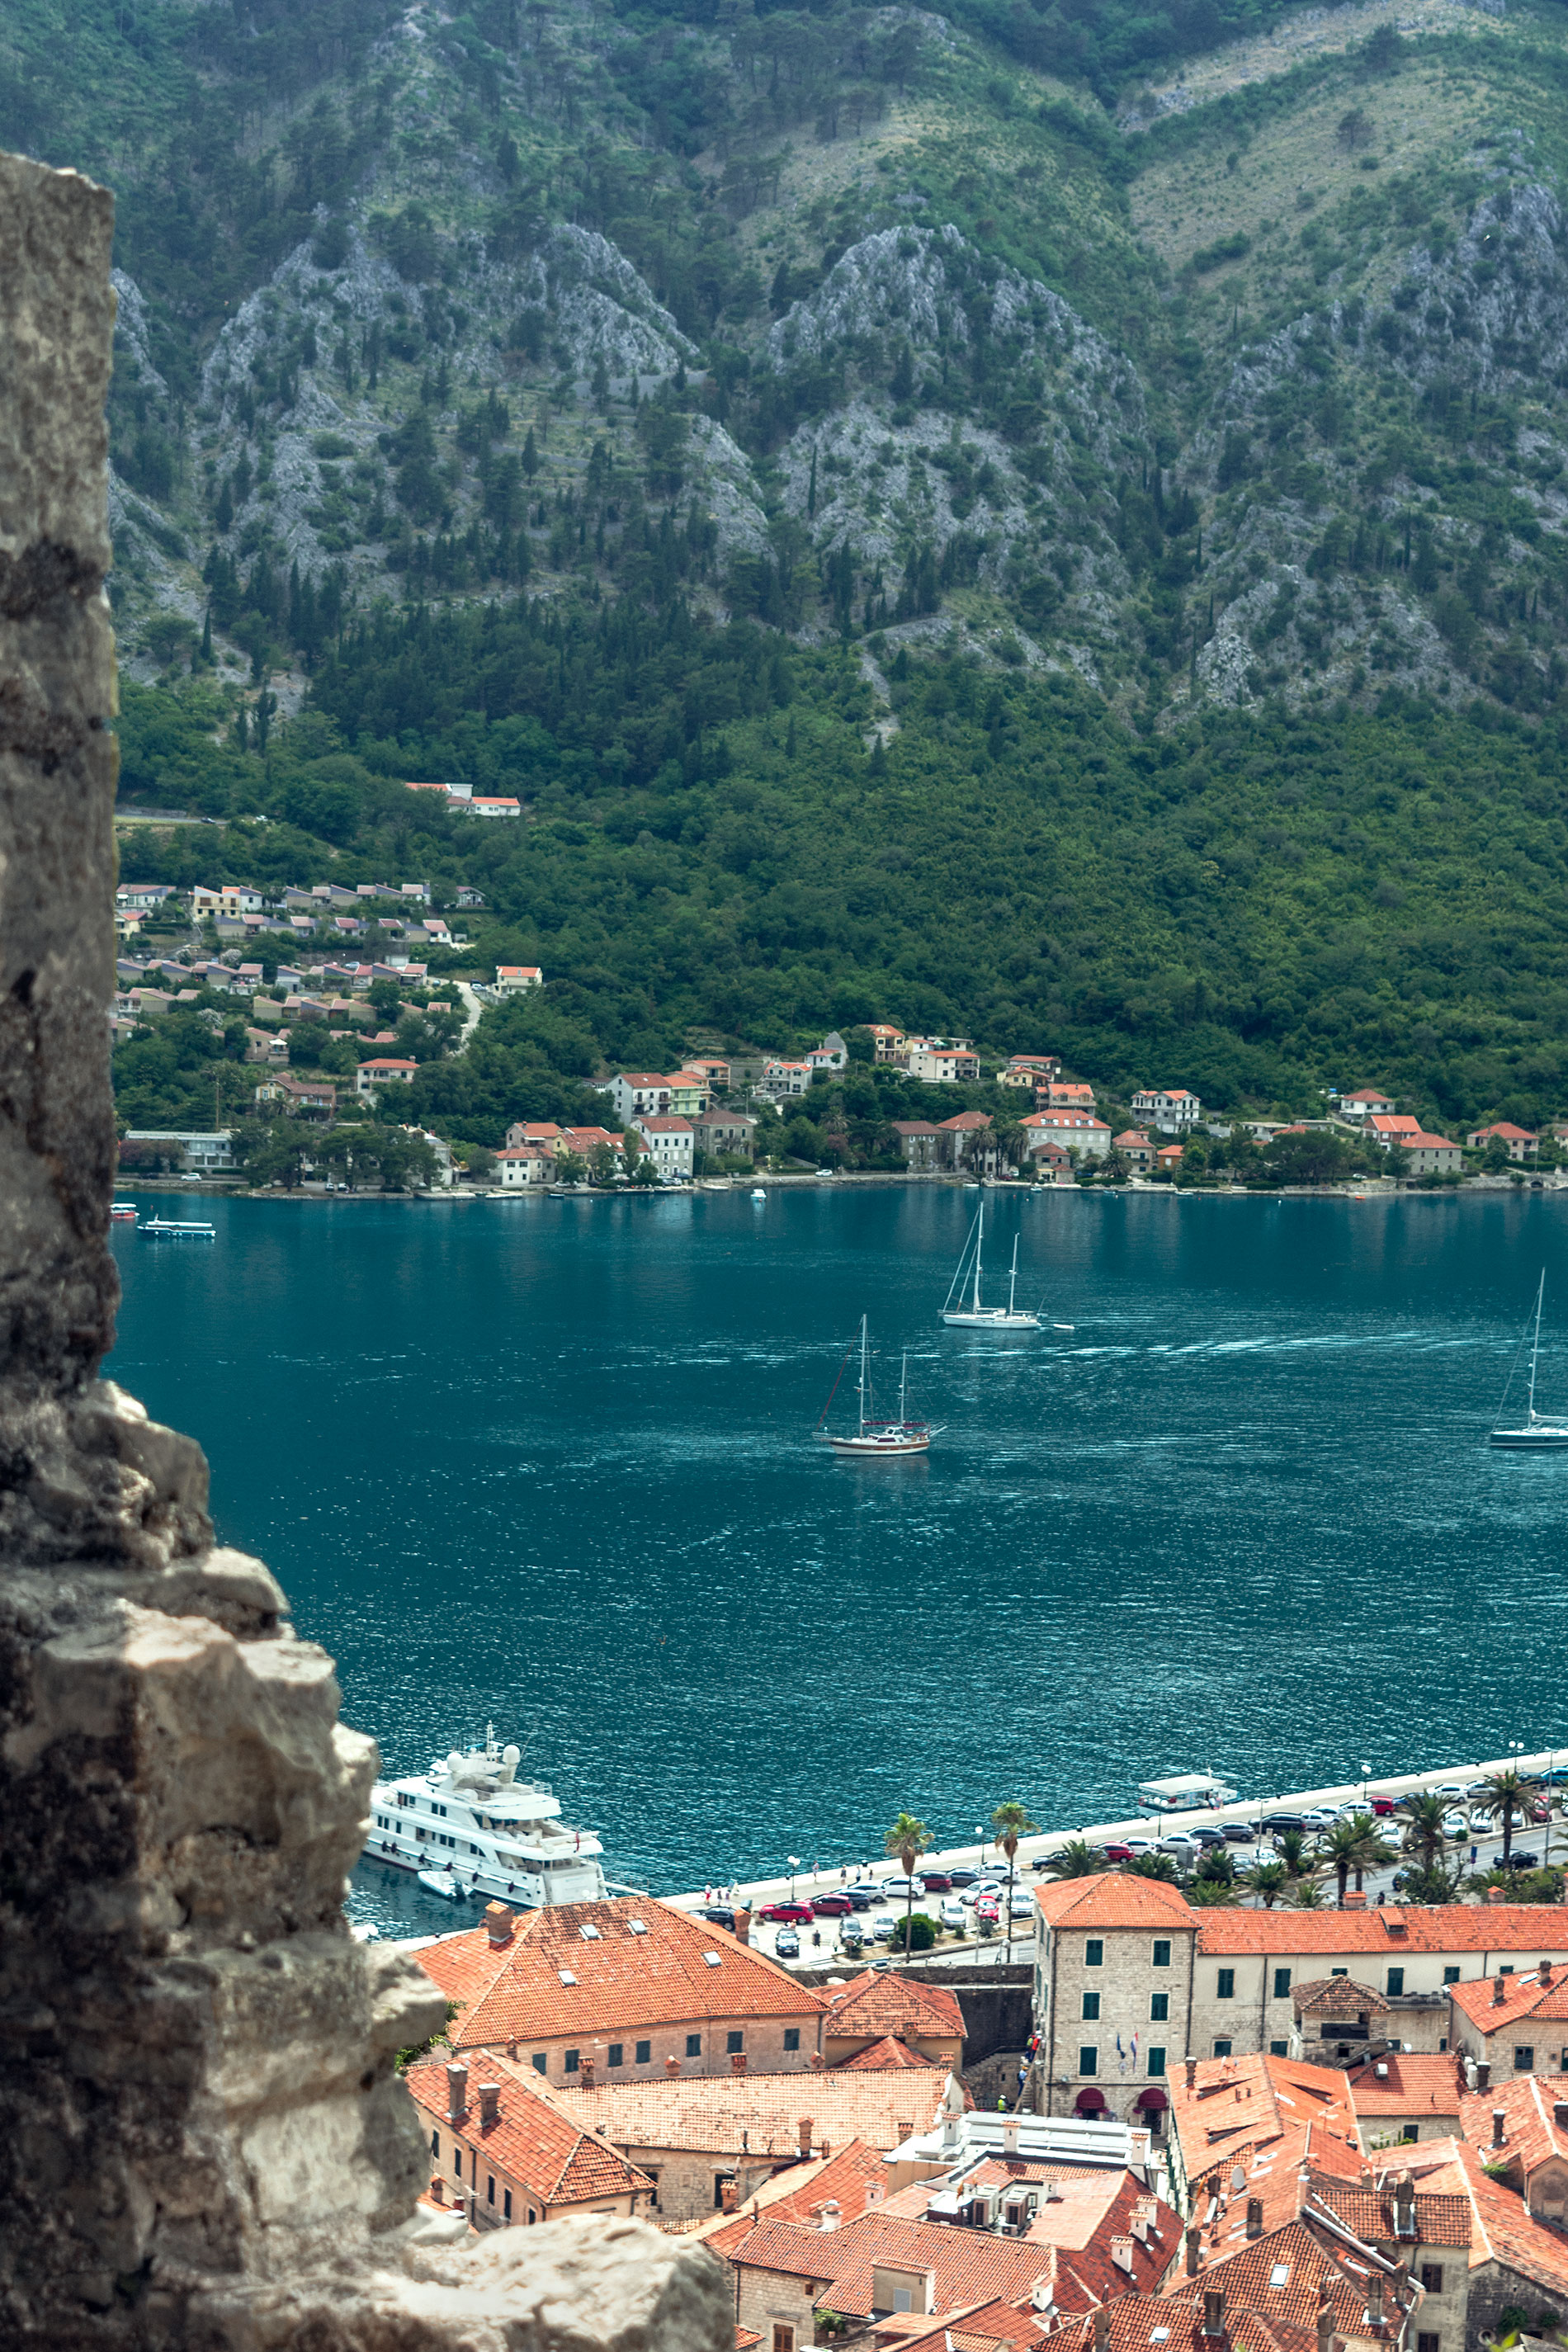 View to the Adriatic Sea from the Walls of Kotor